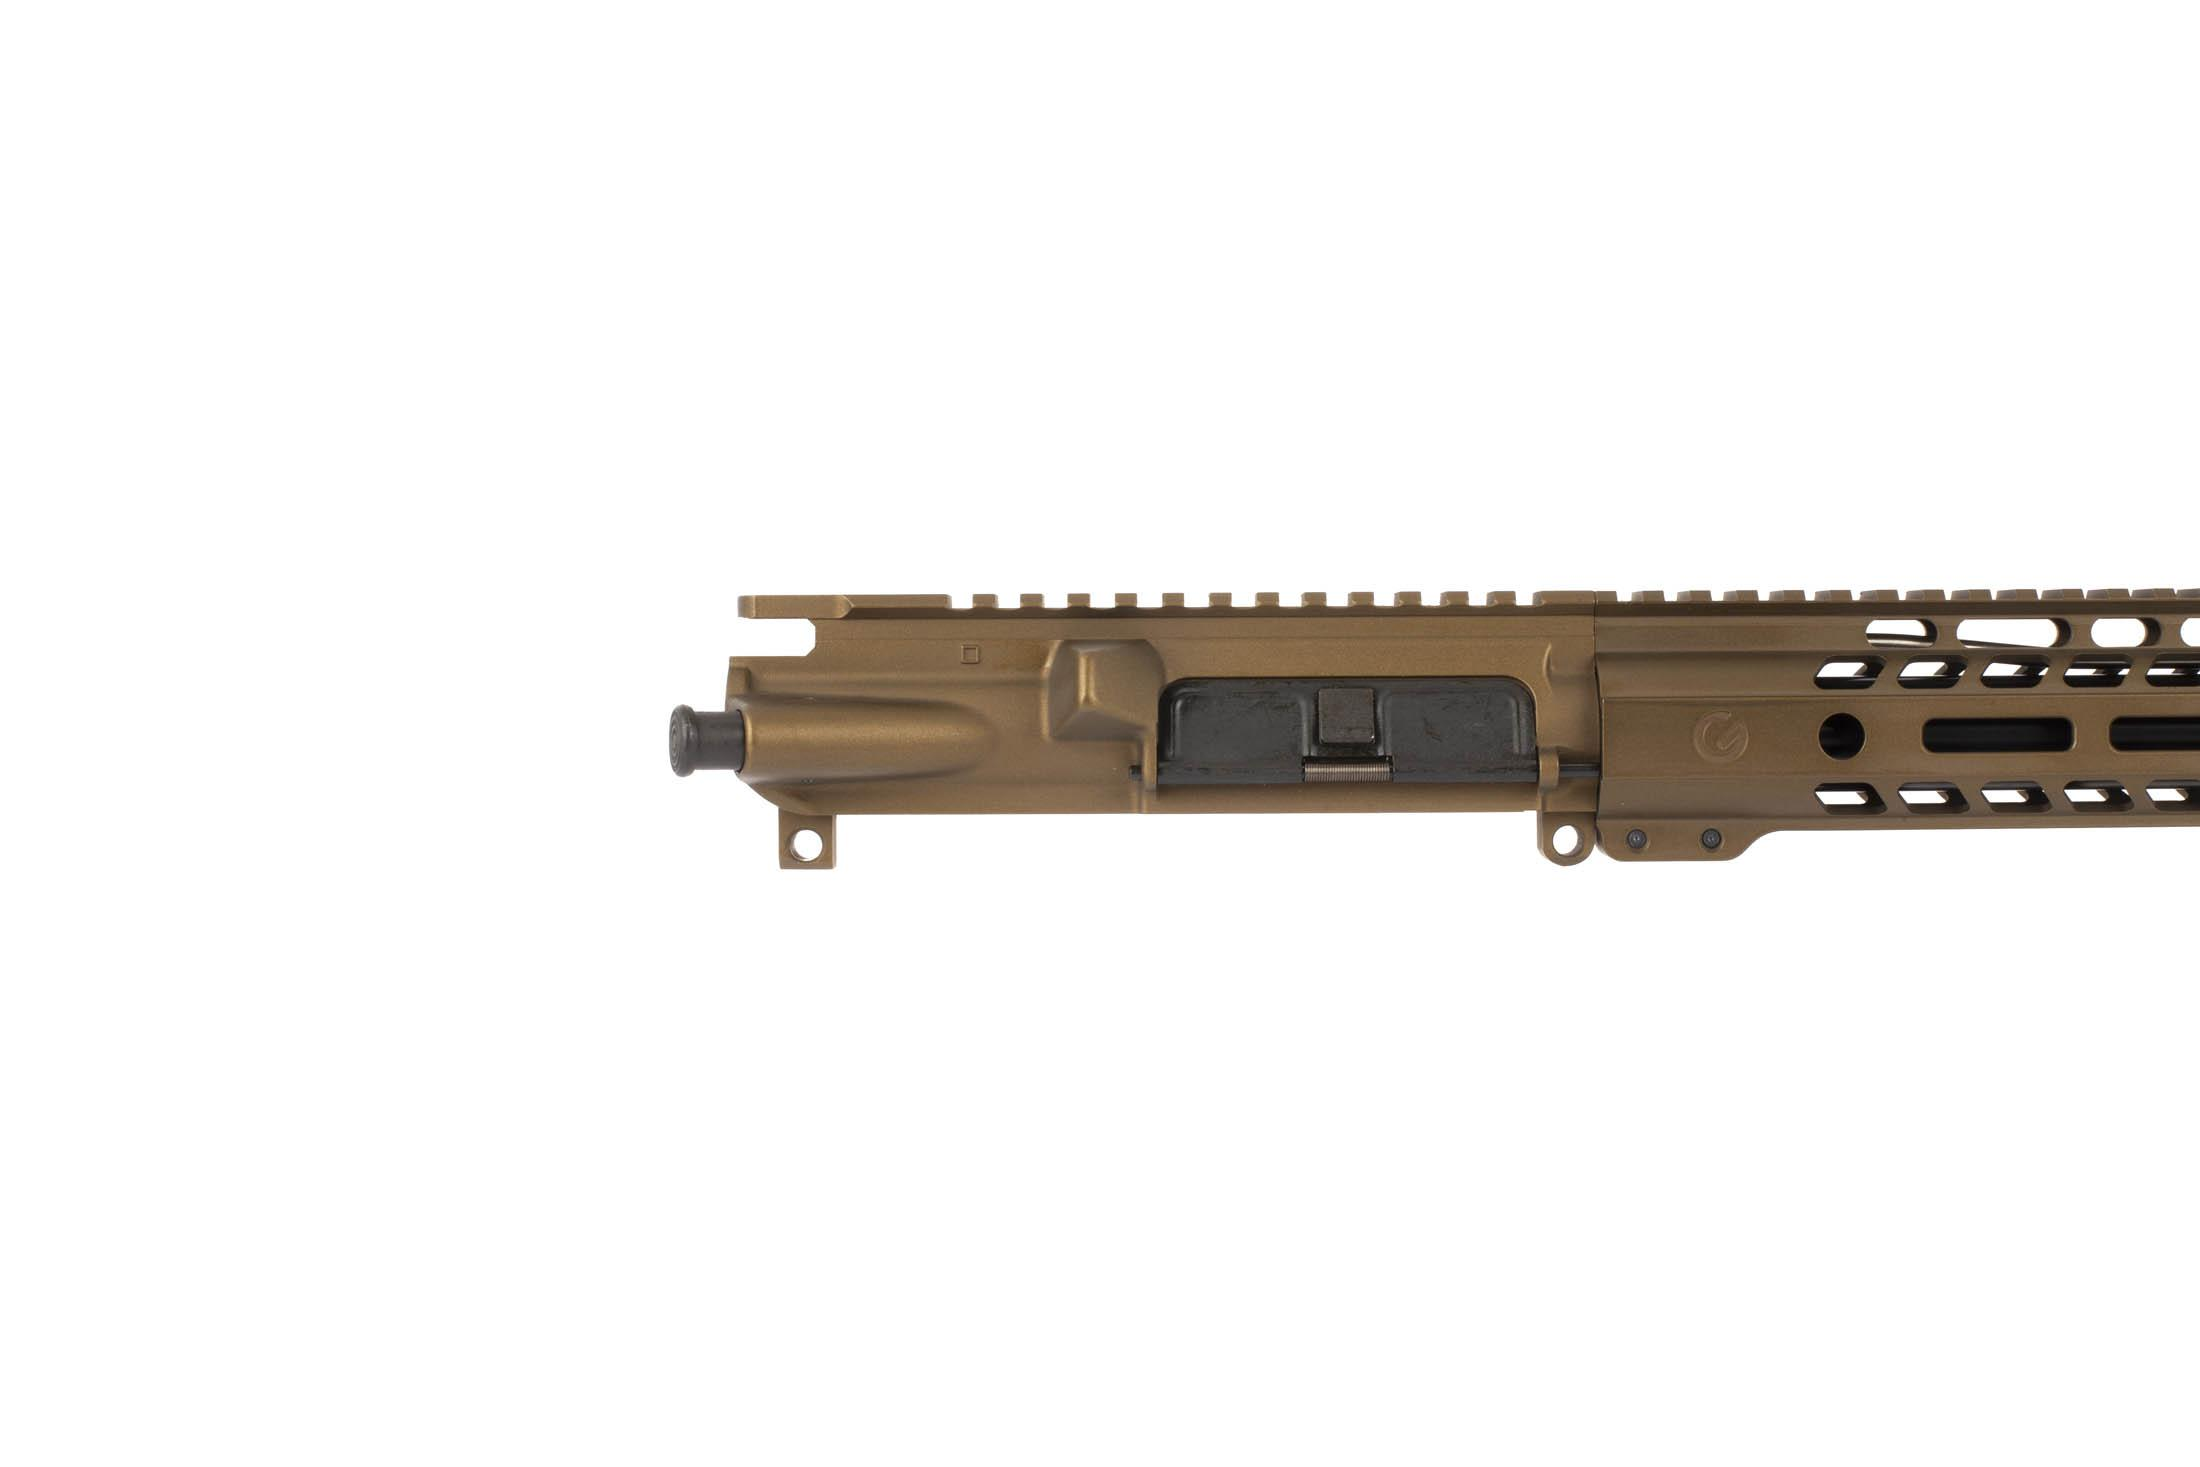 This Ghost Firearms 20 6.5 Grendel 1:8 Elite Rifle Length Barreled Upper is available in Burnt Bronze